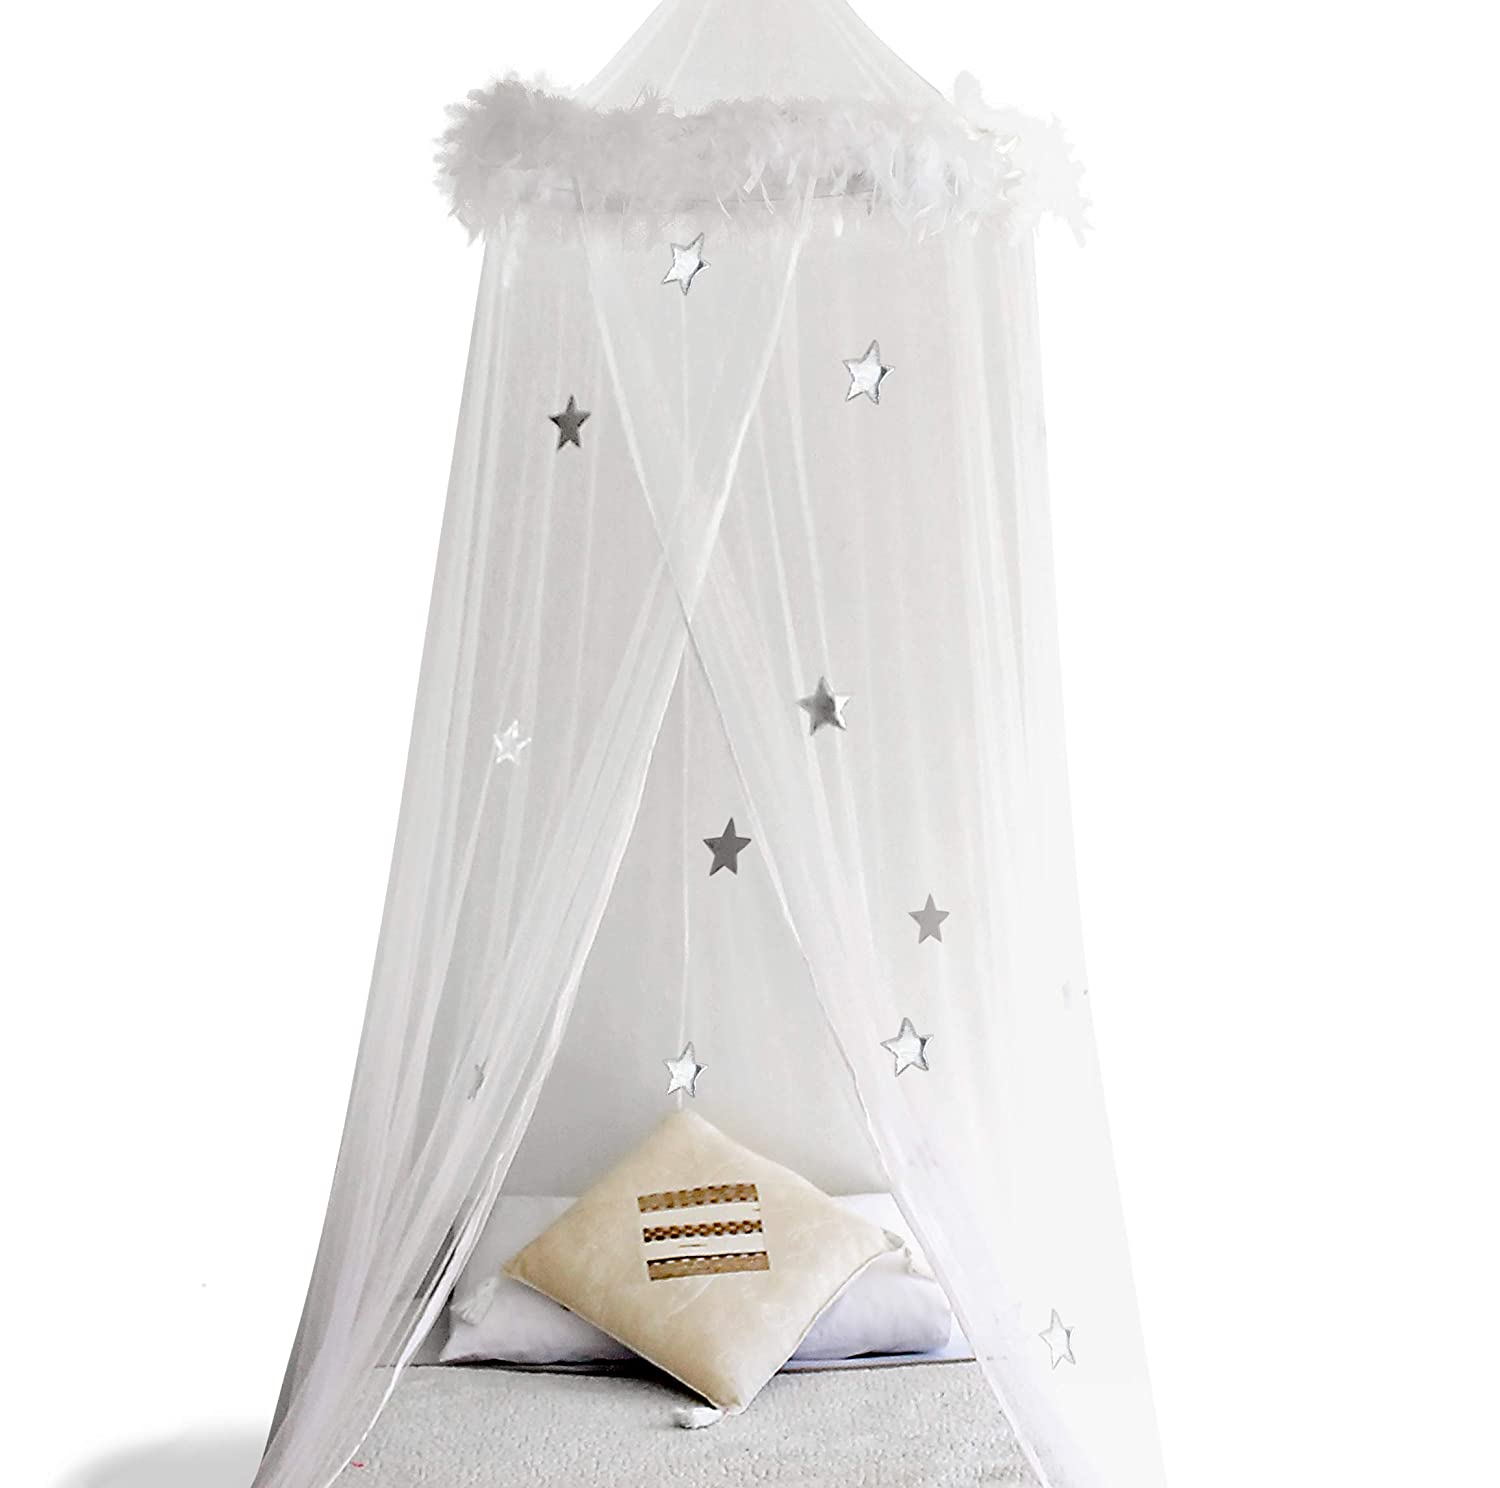 Boho & Beach Bed Canopy Mosquito Net Curtains with Feathers and Stars for Girls Toddlers and Teens, White WME Products 58920004